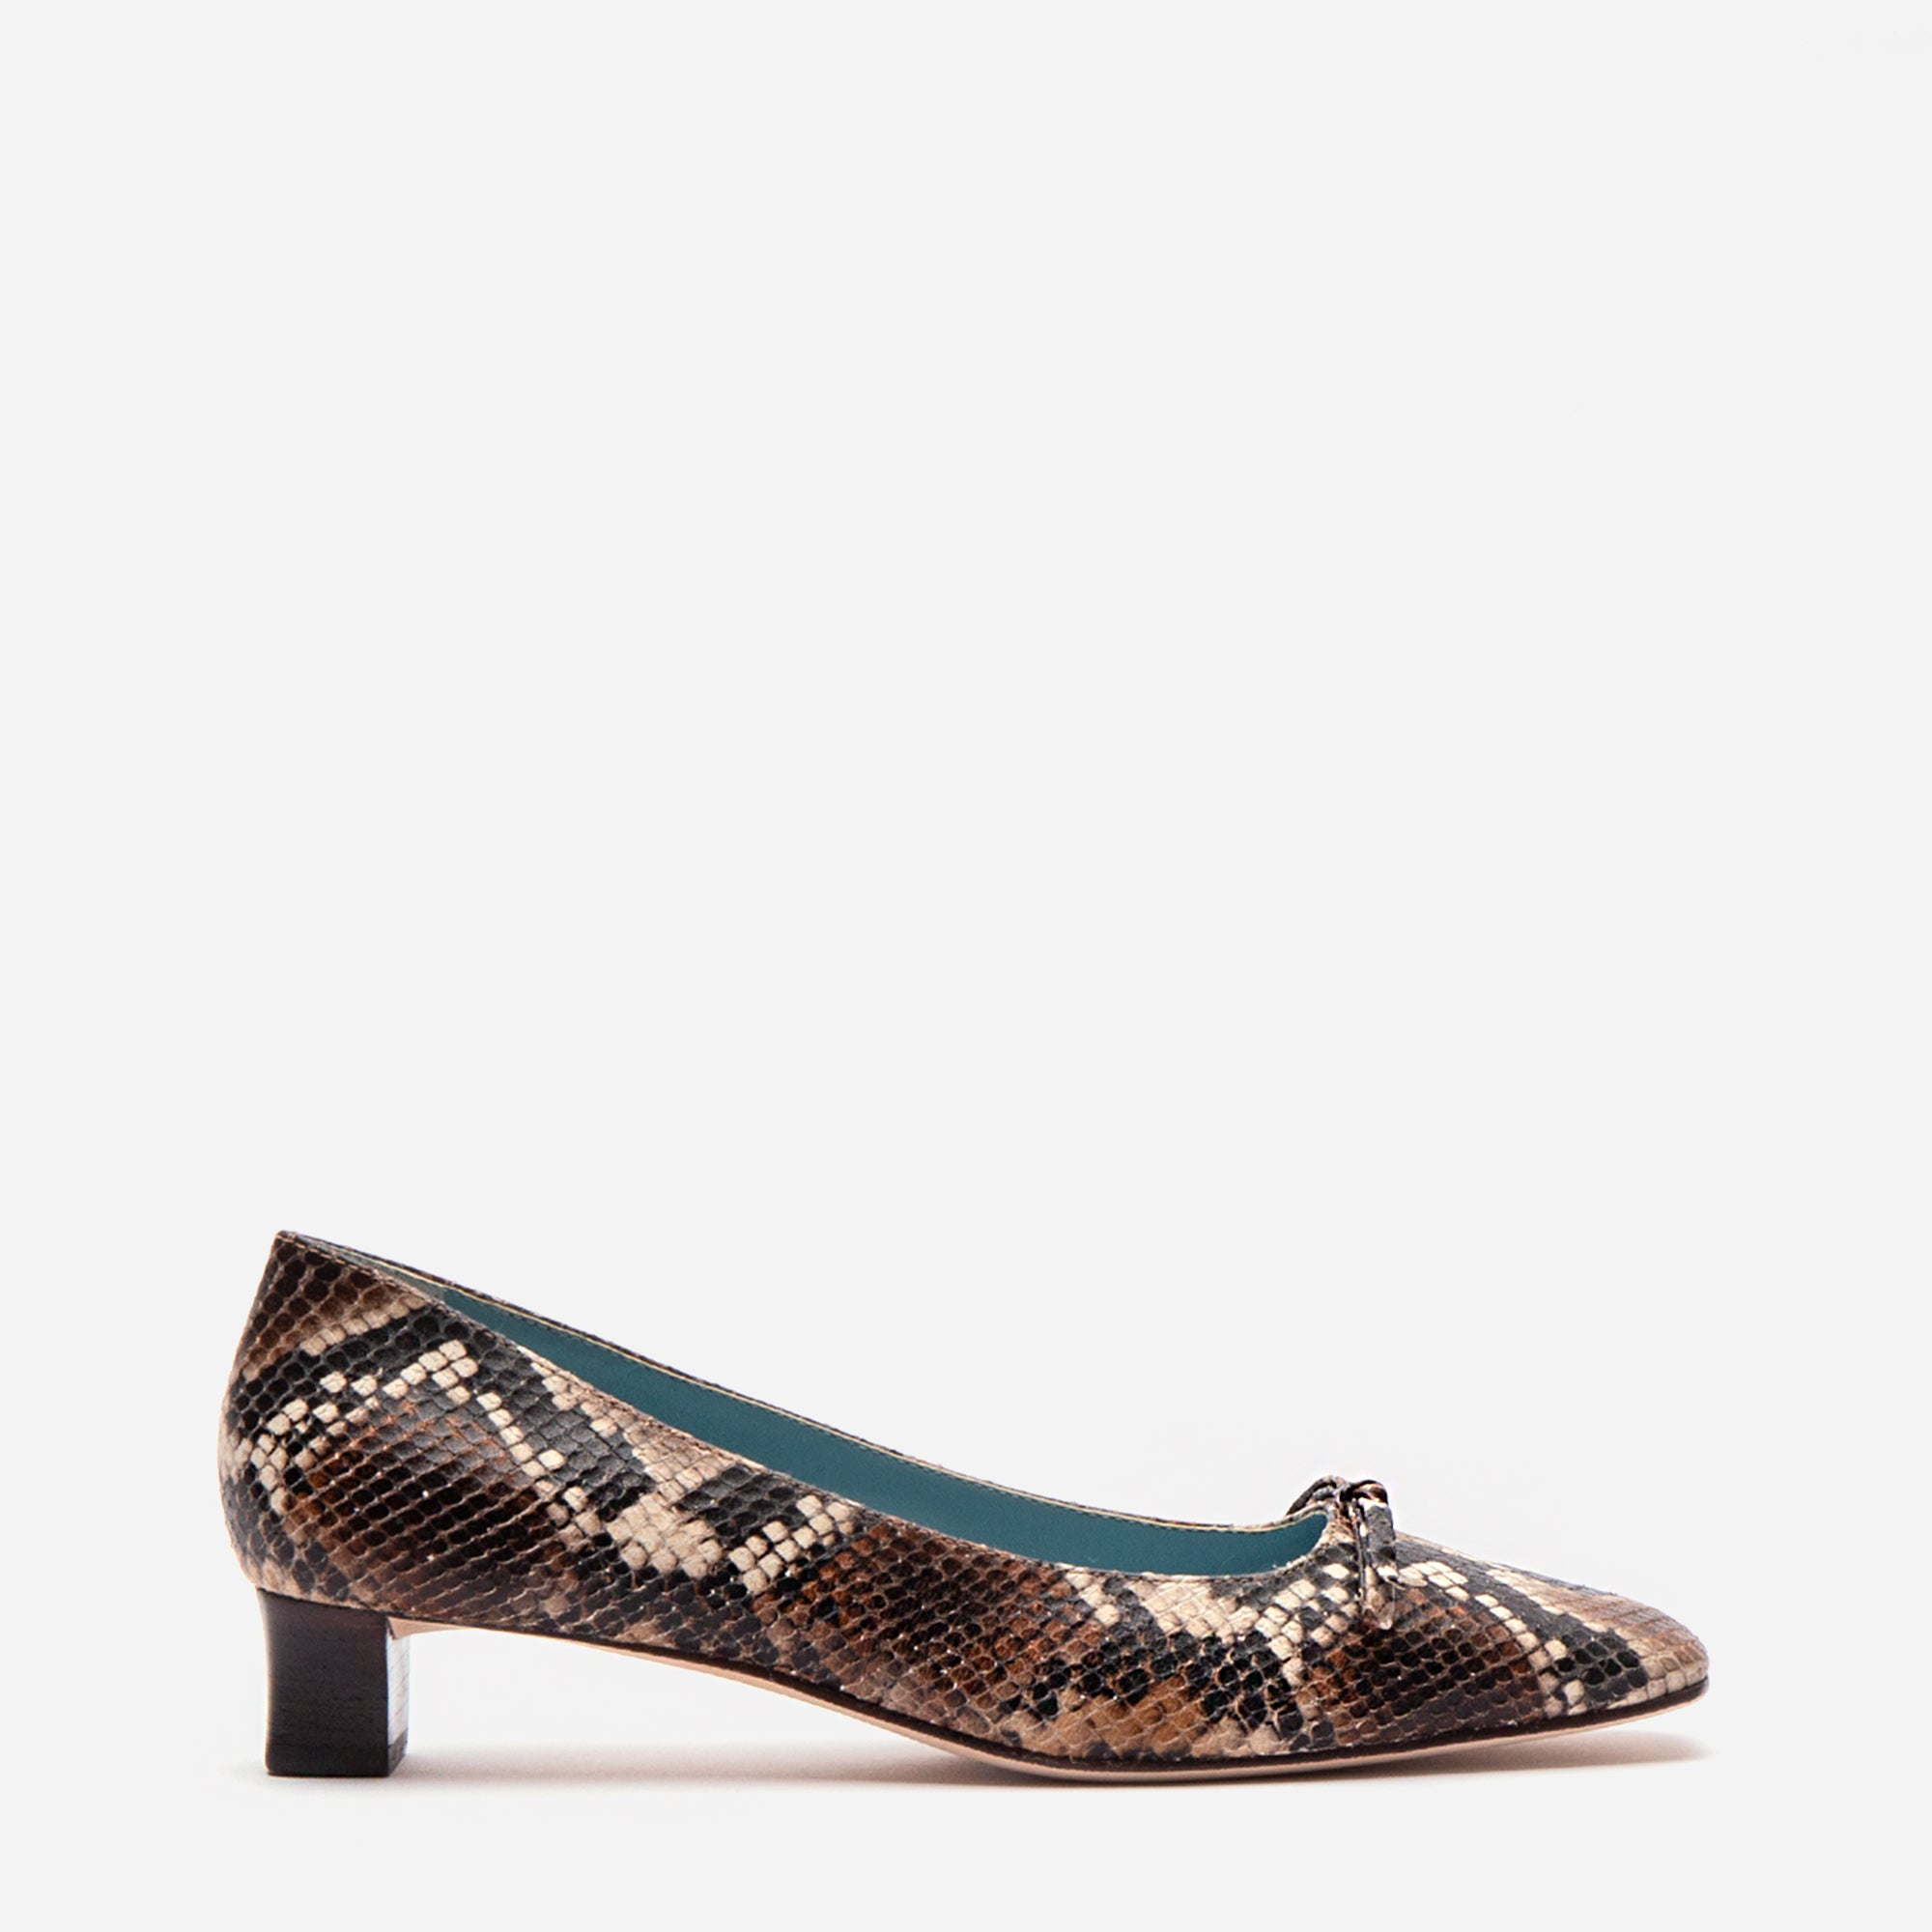 Mary Mini Block Heel Printed Snake Chocolate - Frances Valentine